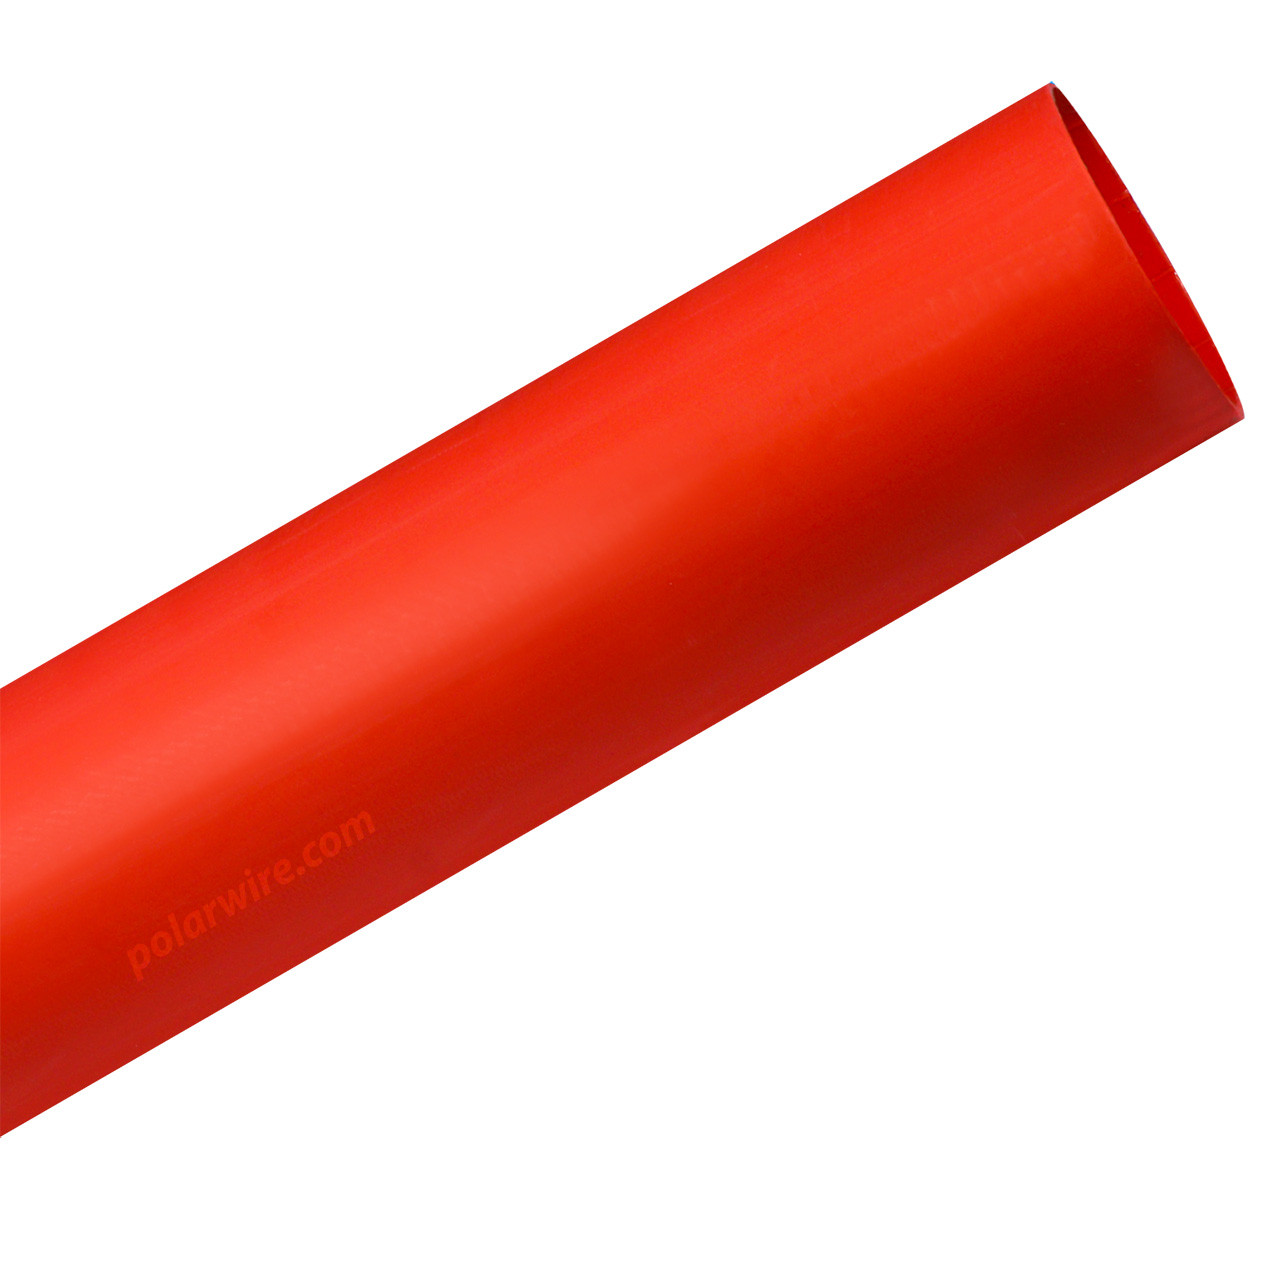 """1 1/2""""  Heavy Wall Adhesive Lined Heat Shrink Tubing 3 to 1 shrink ratio"""